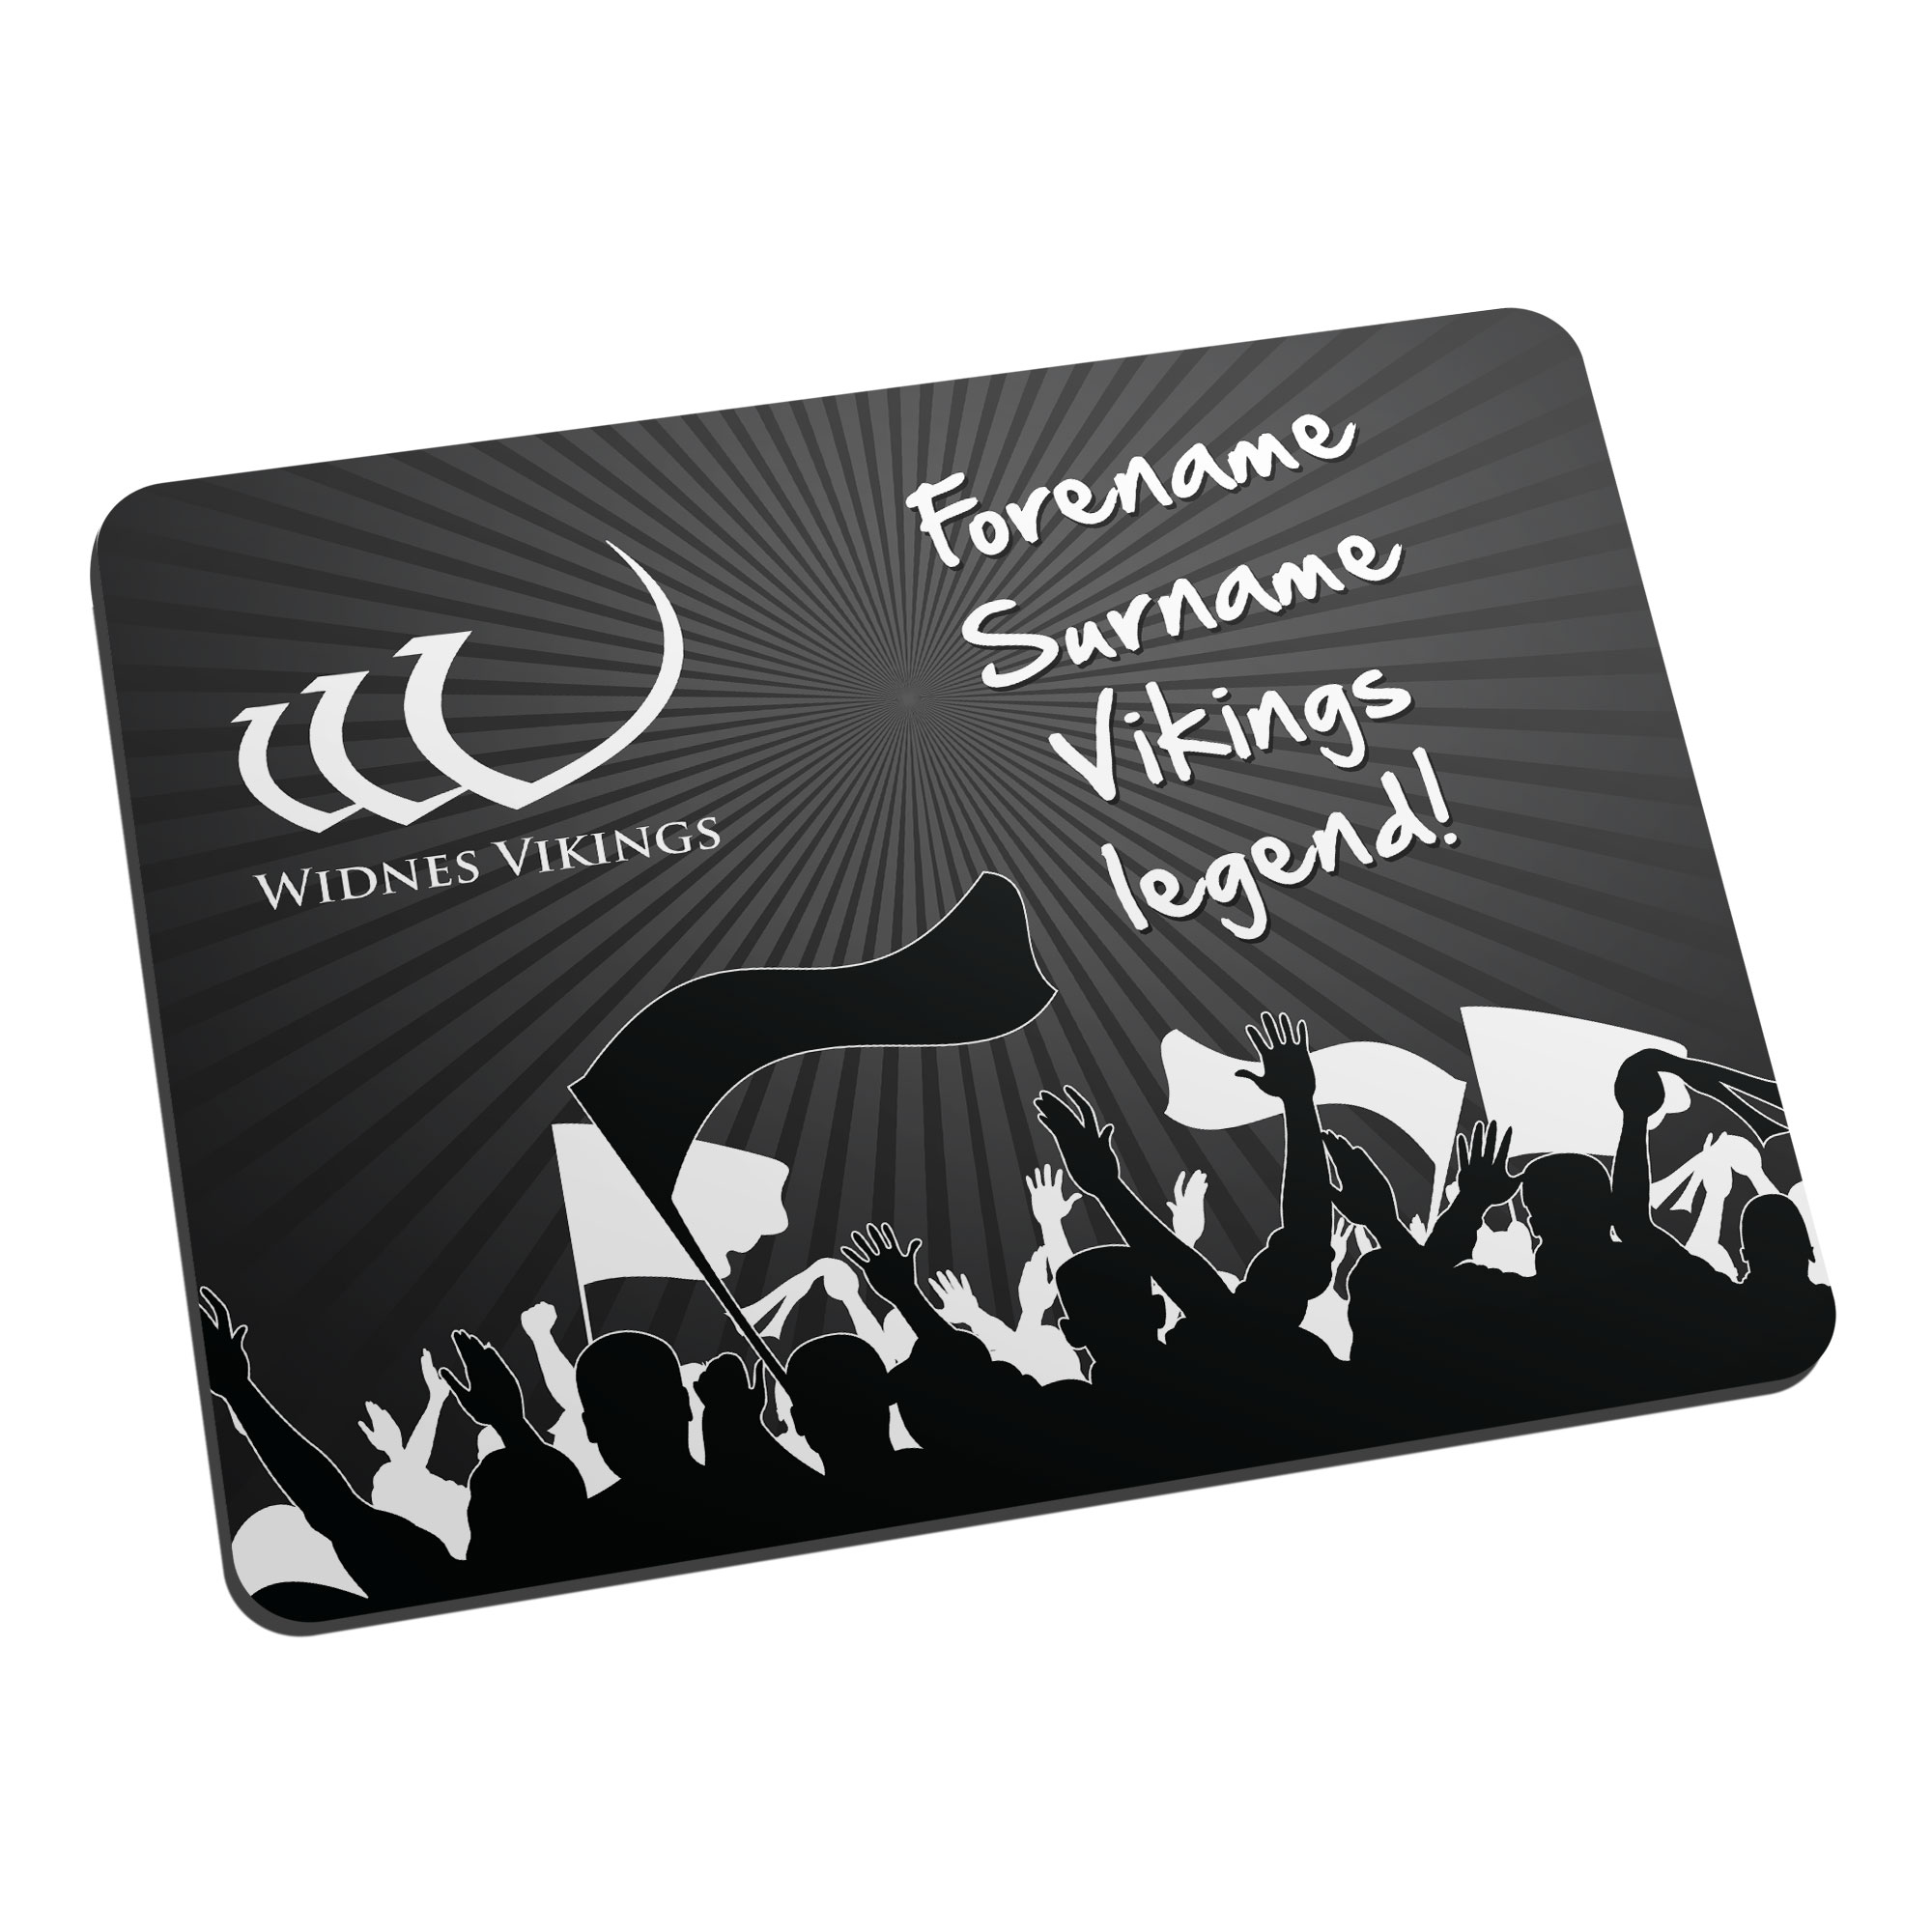 Widnes Vikings Legend Mouse Mat